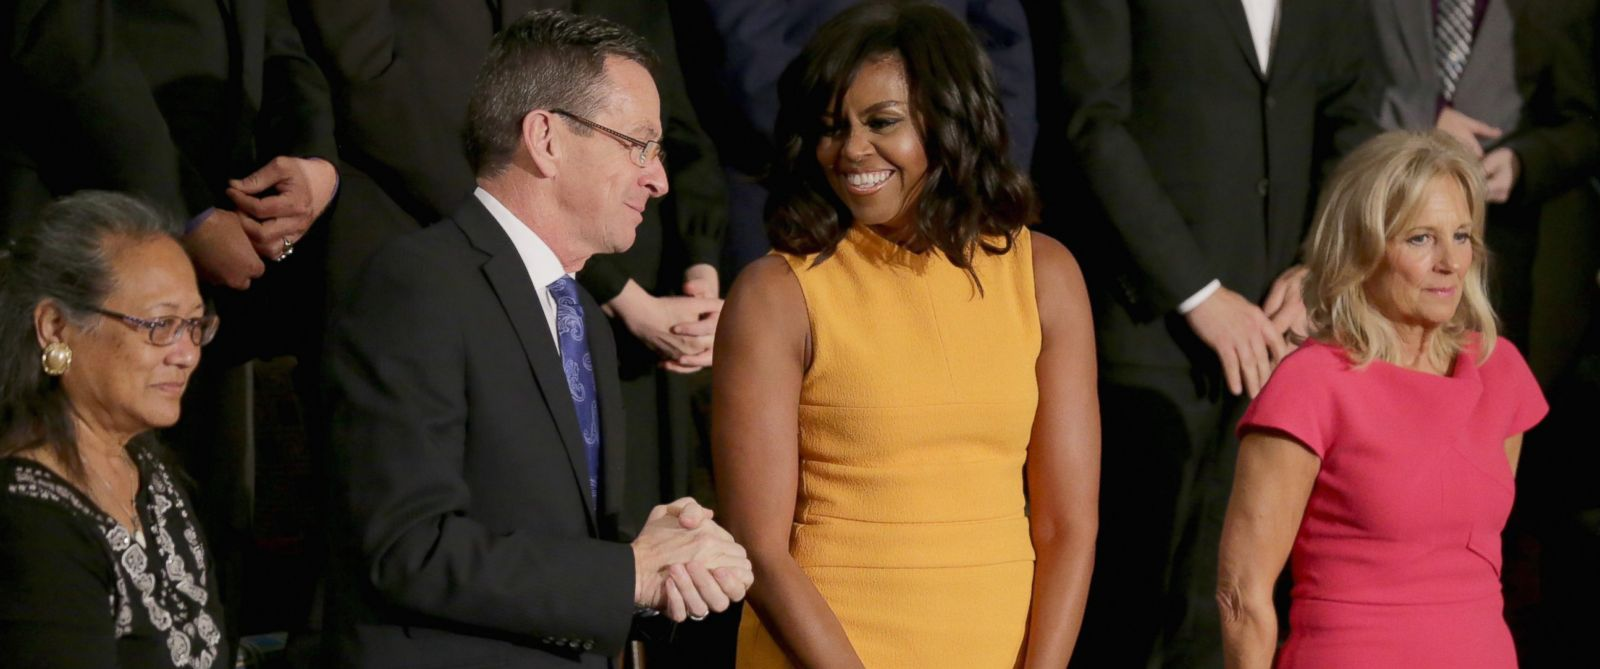 PHOTO: Gov. Dannel P. Malloy of Connecticut, first lady Michelle Obama, and Dr. Jill Biden at the State of the Union speech, Jan. 12, 2016 in Washington, DC.